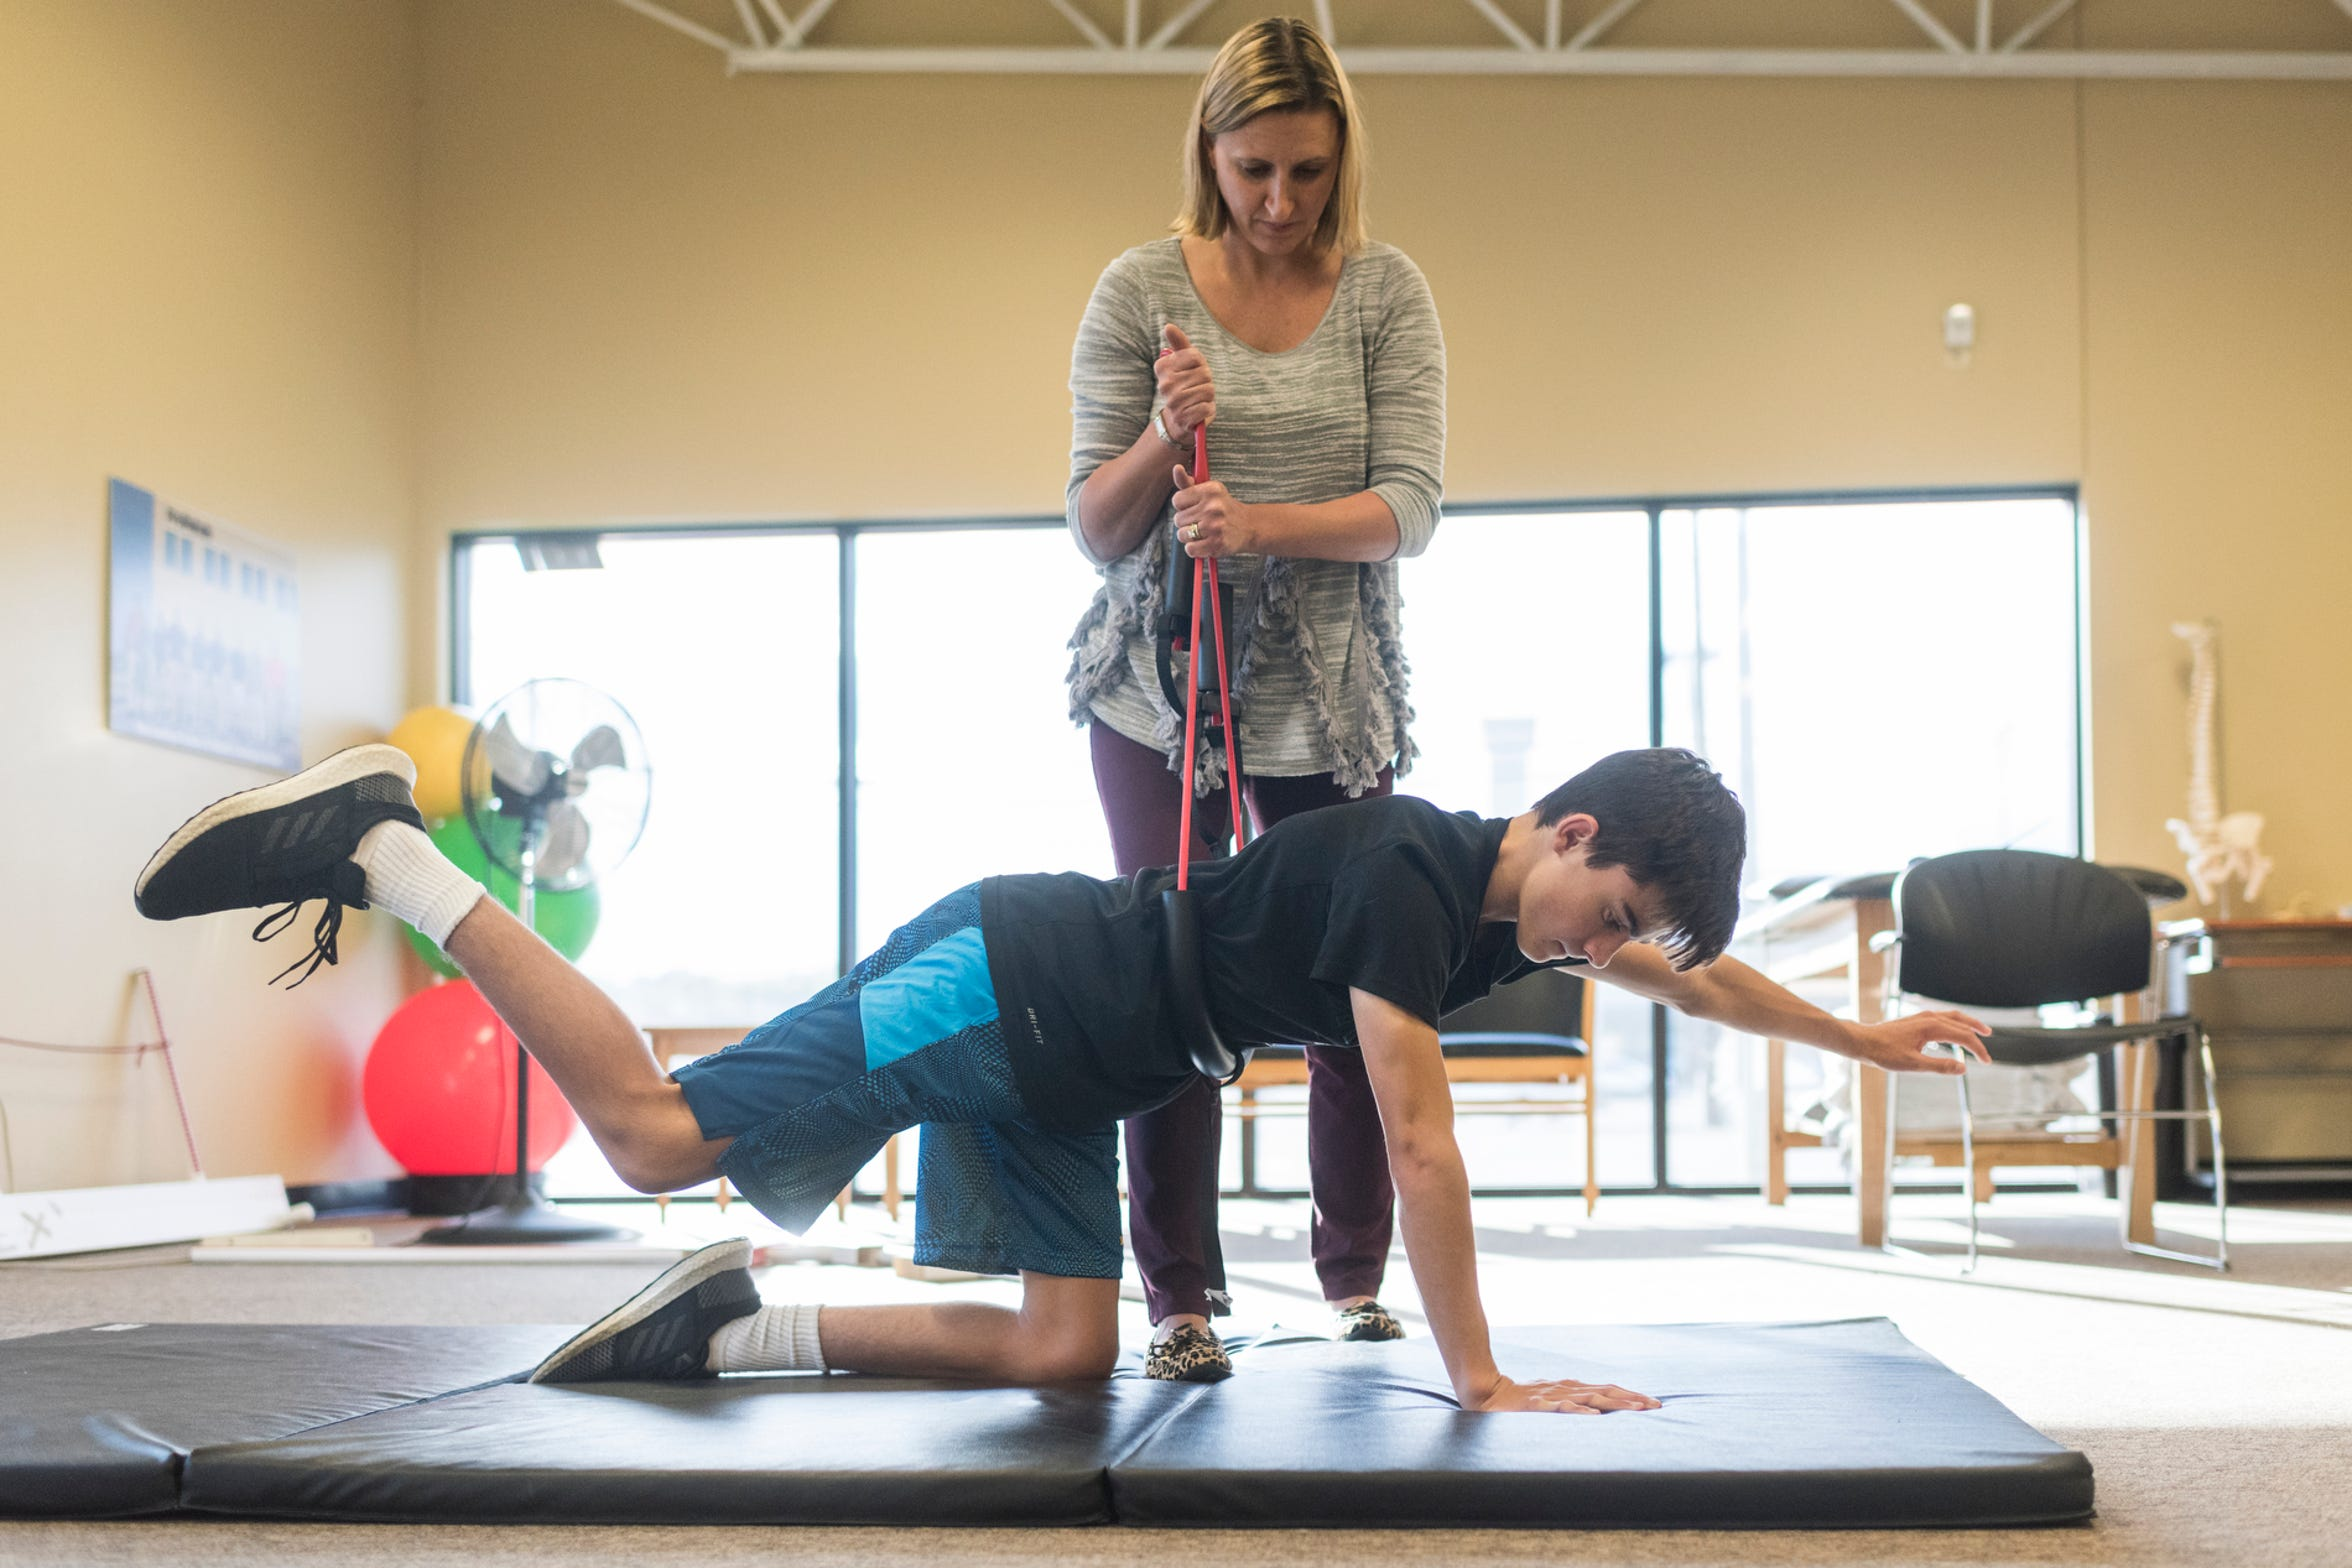 Physical Therapist Natalie Hussmann, top, helps Sam Archuleta, front, during an appointment at Pro Rehab in Evansville, Ind., Wednesday, Oct. 10, 2018. They meet once a week to build his strength to combat the effects of Friedreich's ataxia (FA).